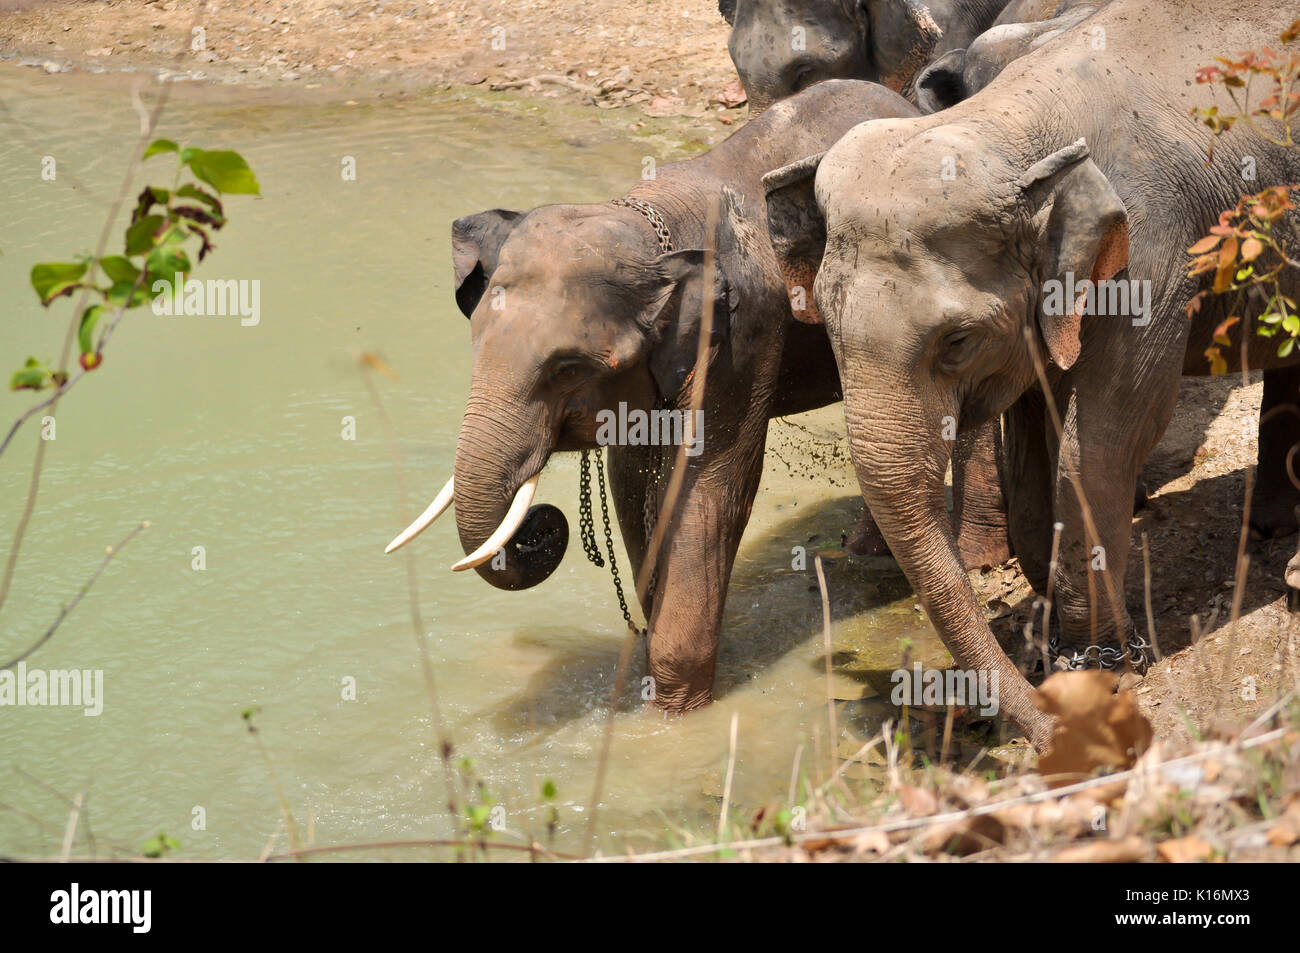 The elephant trunk can hold about four litres of water. Elephants will playfully wrestle with each other using their trunks, but generally use their t - Stock Image